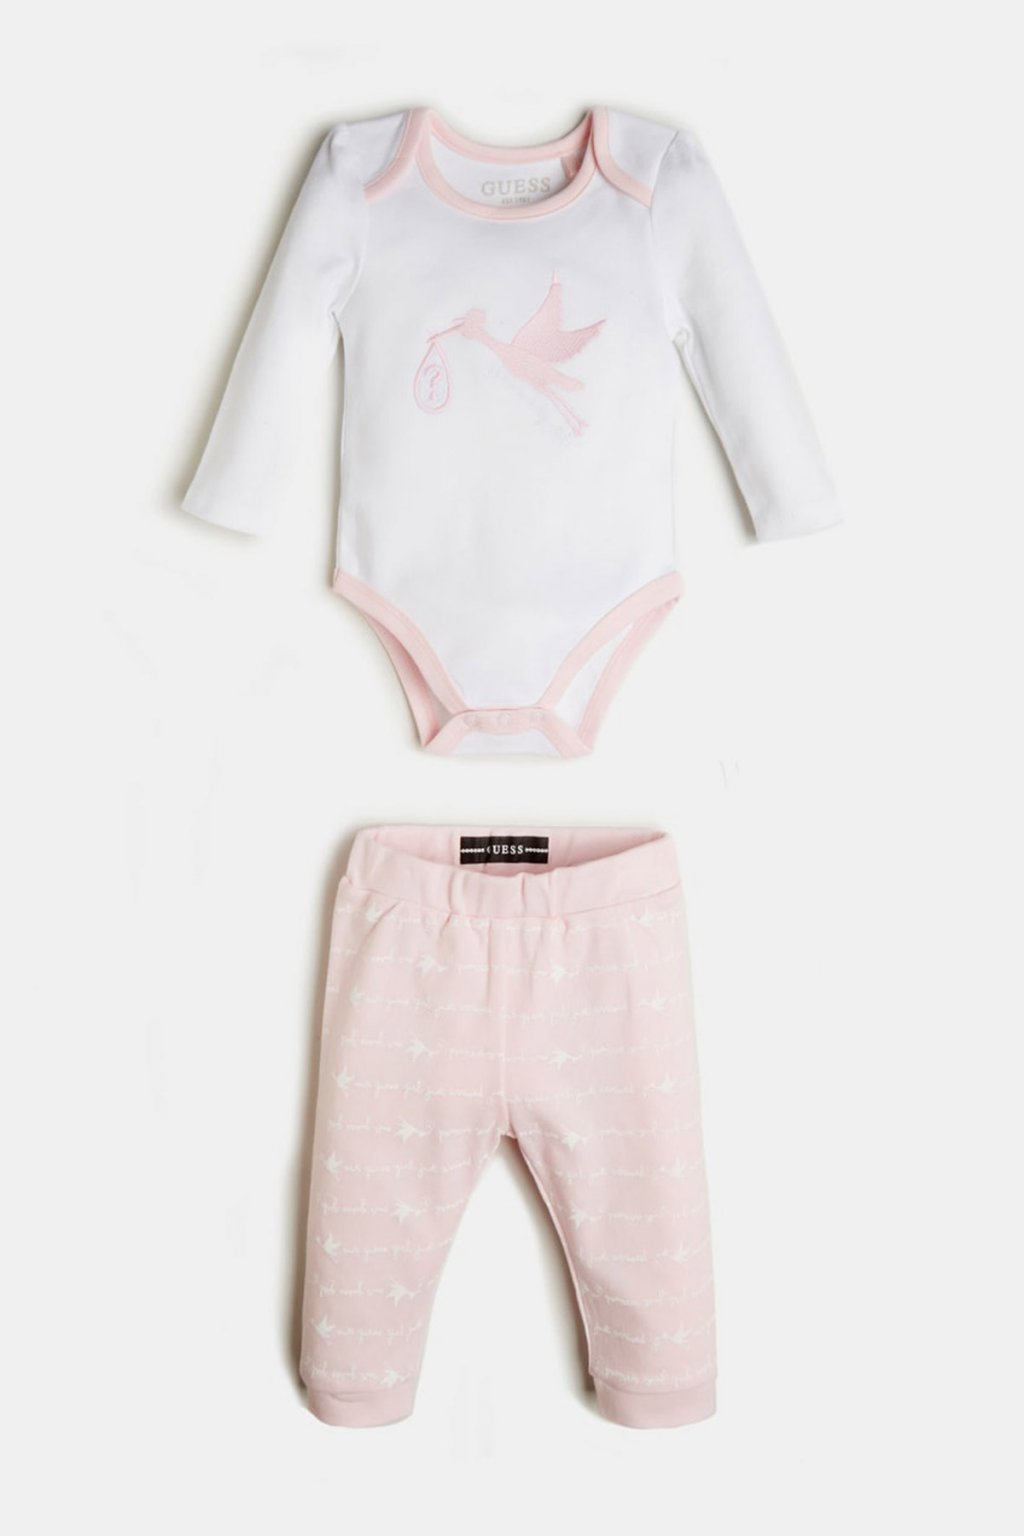 Guess - BABY SET (2PACK) (Barva Bílá, Velikost 68)